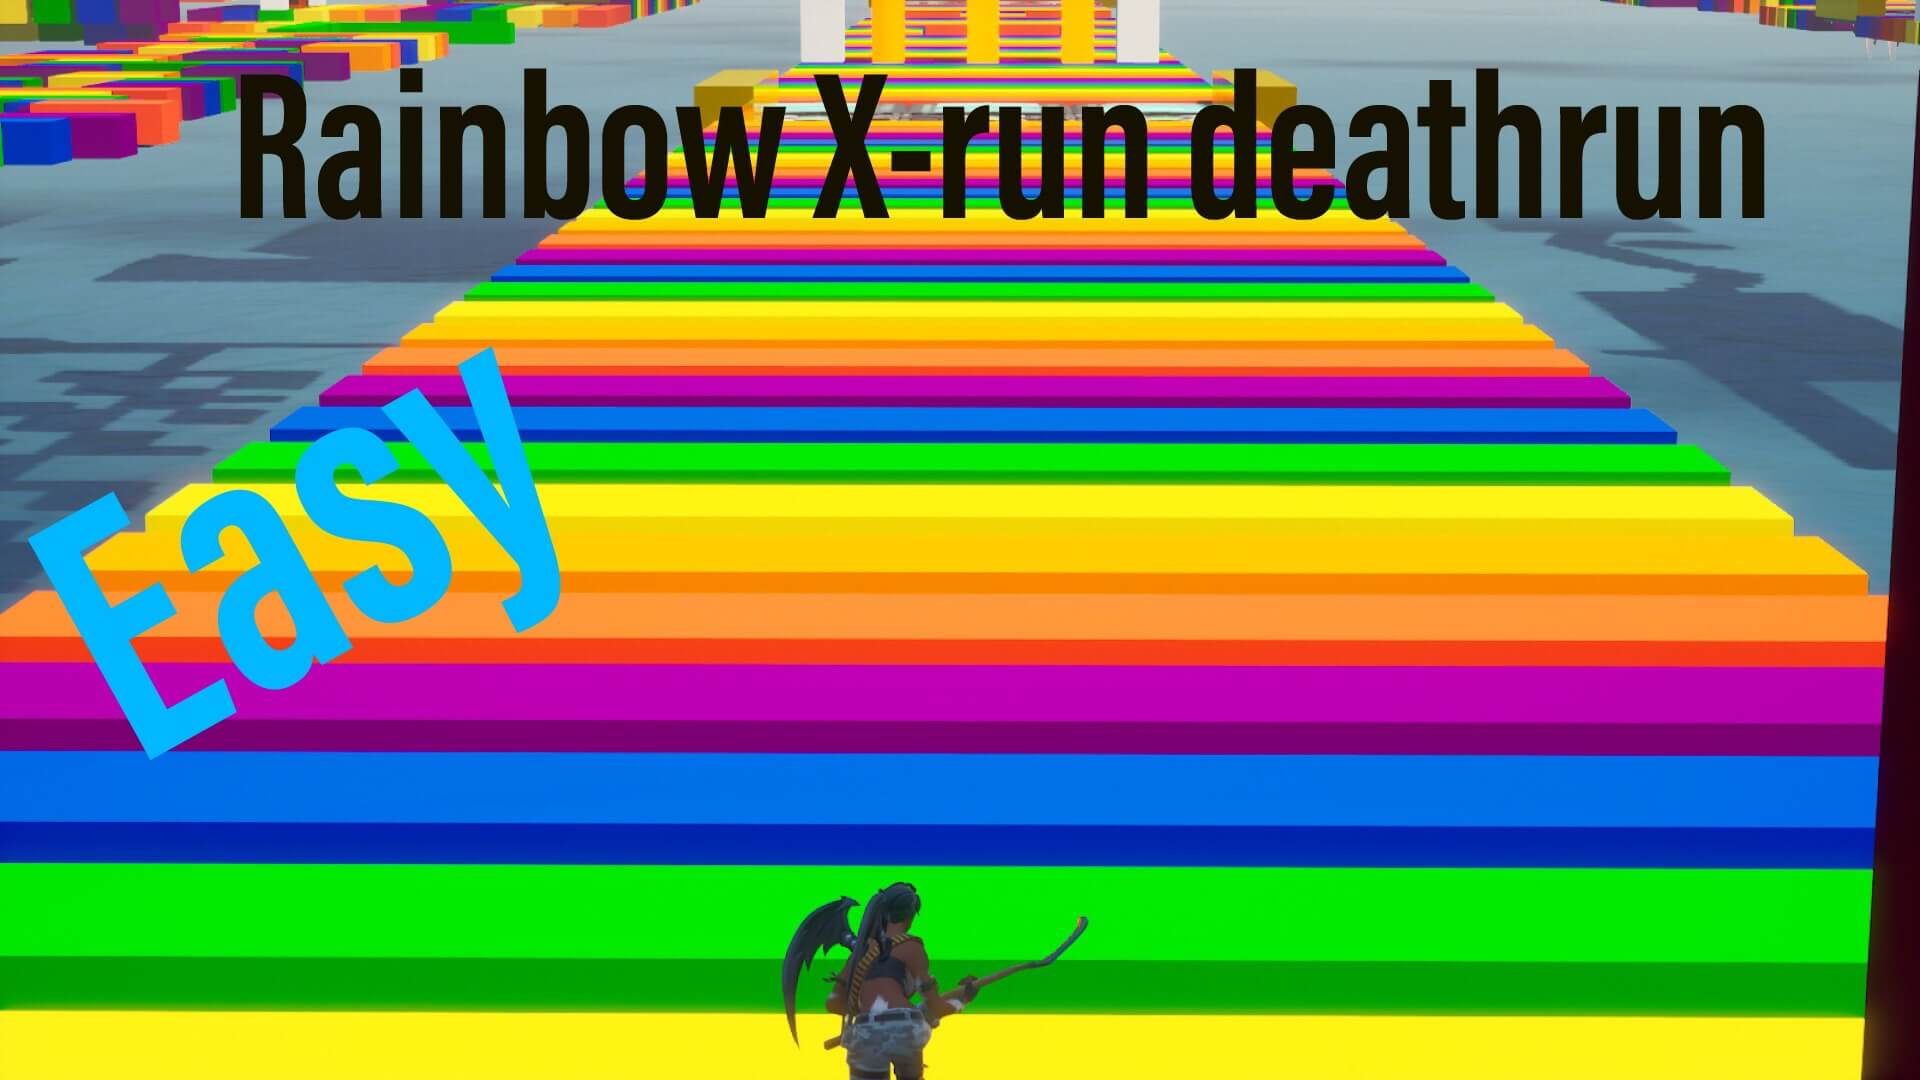 RAINBOW X-RUN PARKOUR